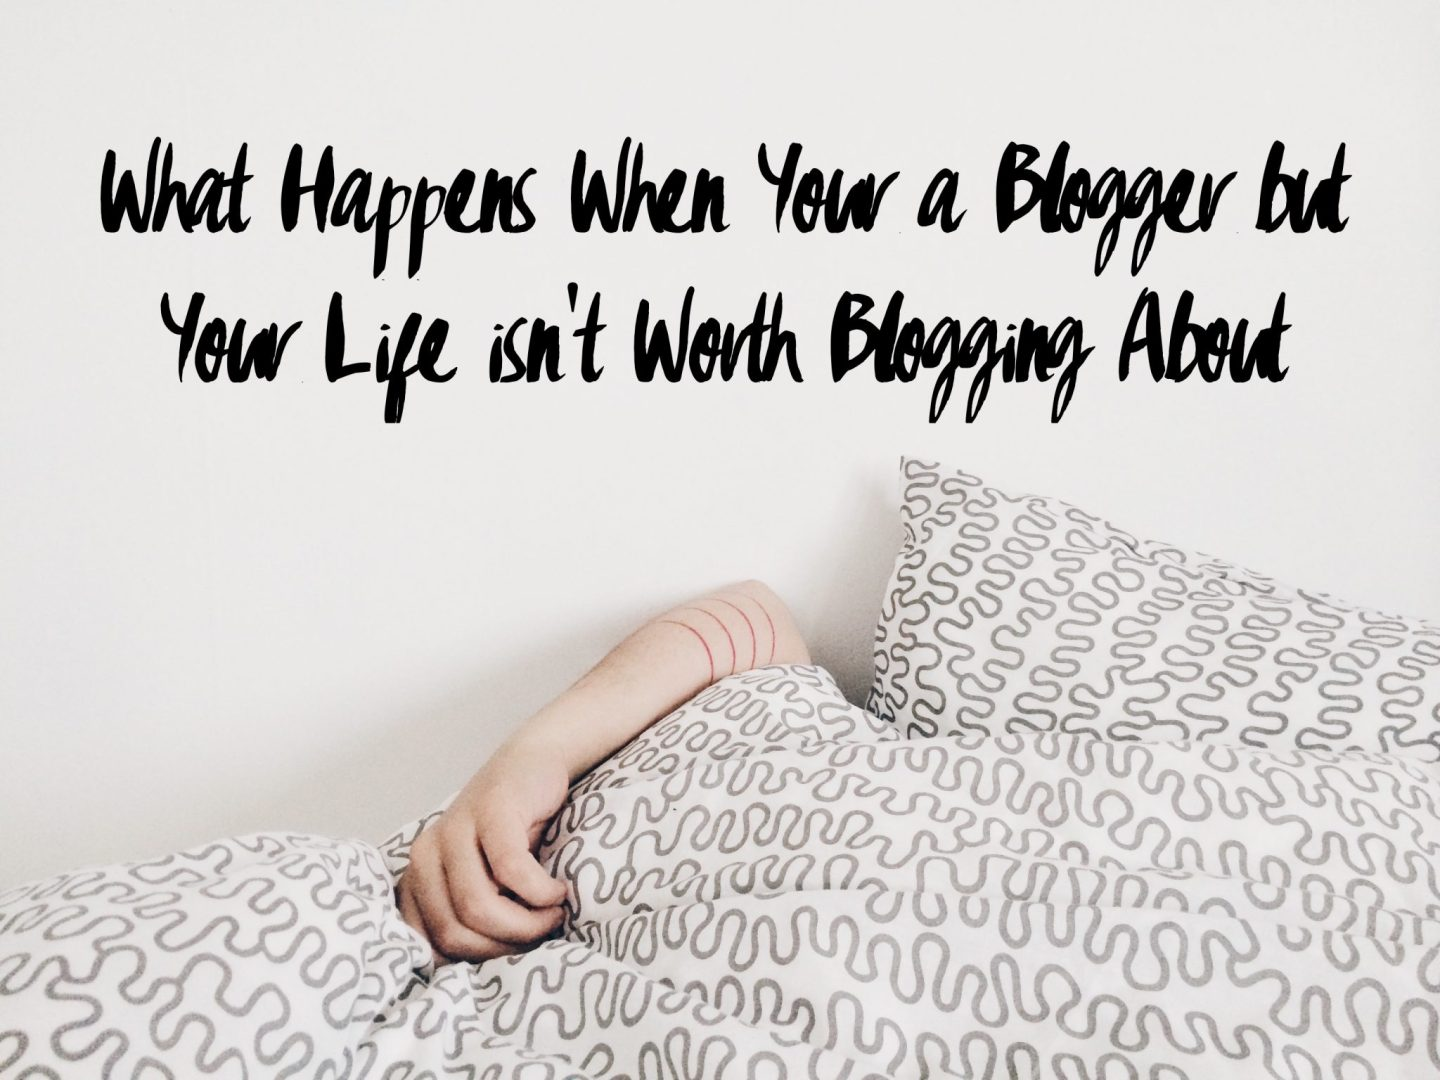 What Happens When You're a Blogger but Your Life isn't Worth Blogging About